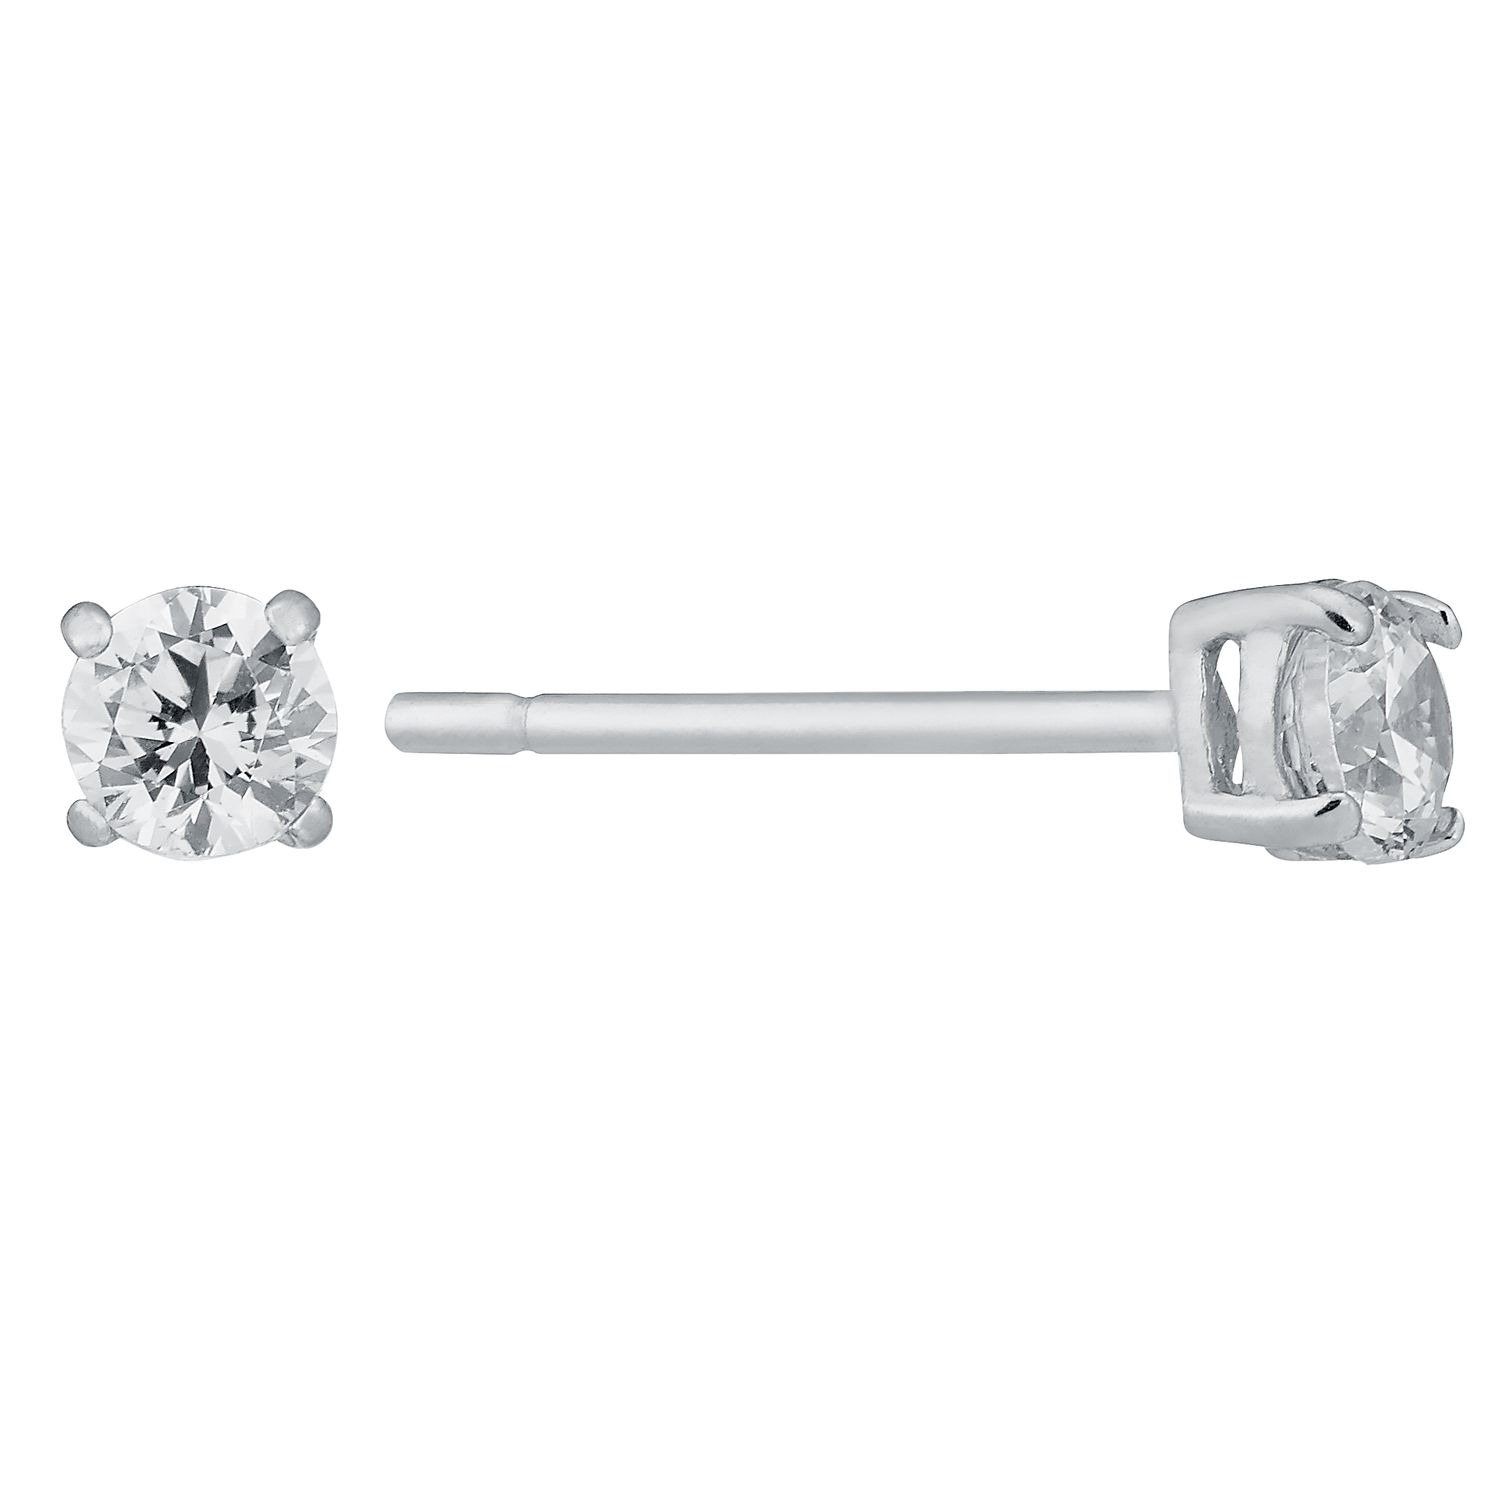 9ct White Gold Cubic Zirconia 3mm Stud Earrings - Product number 8983186